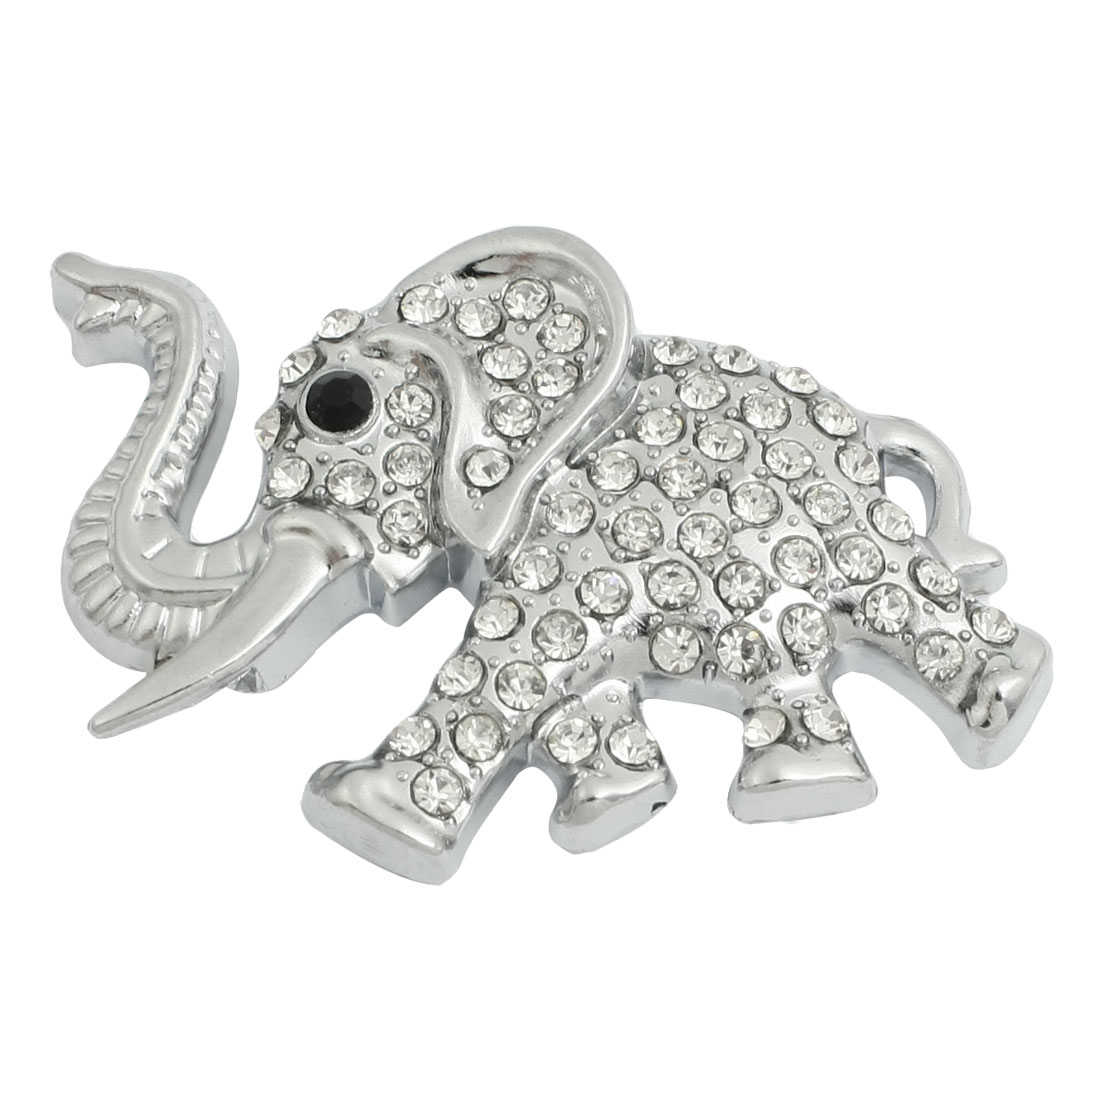 Clear Rhinestone Inlaid Silver Tone Elephant Style Car Sticker Decor